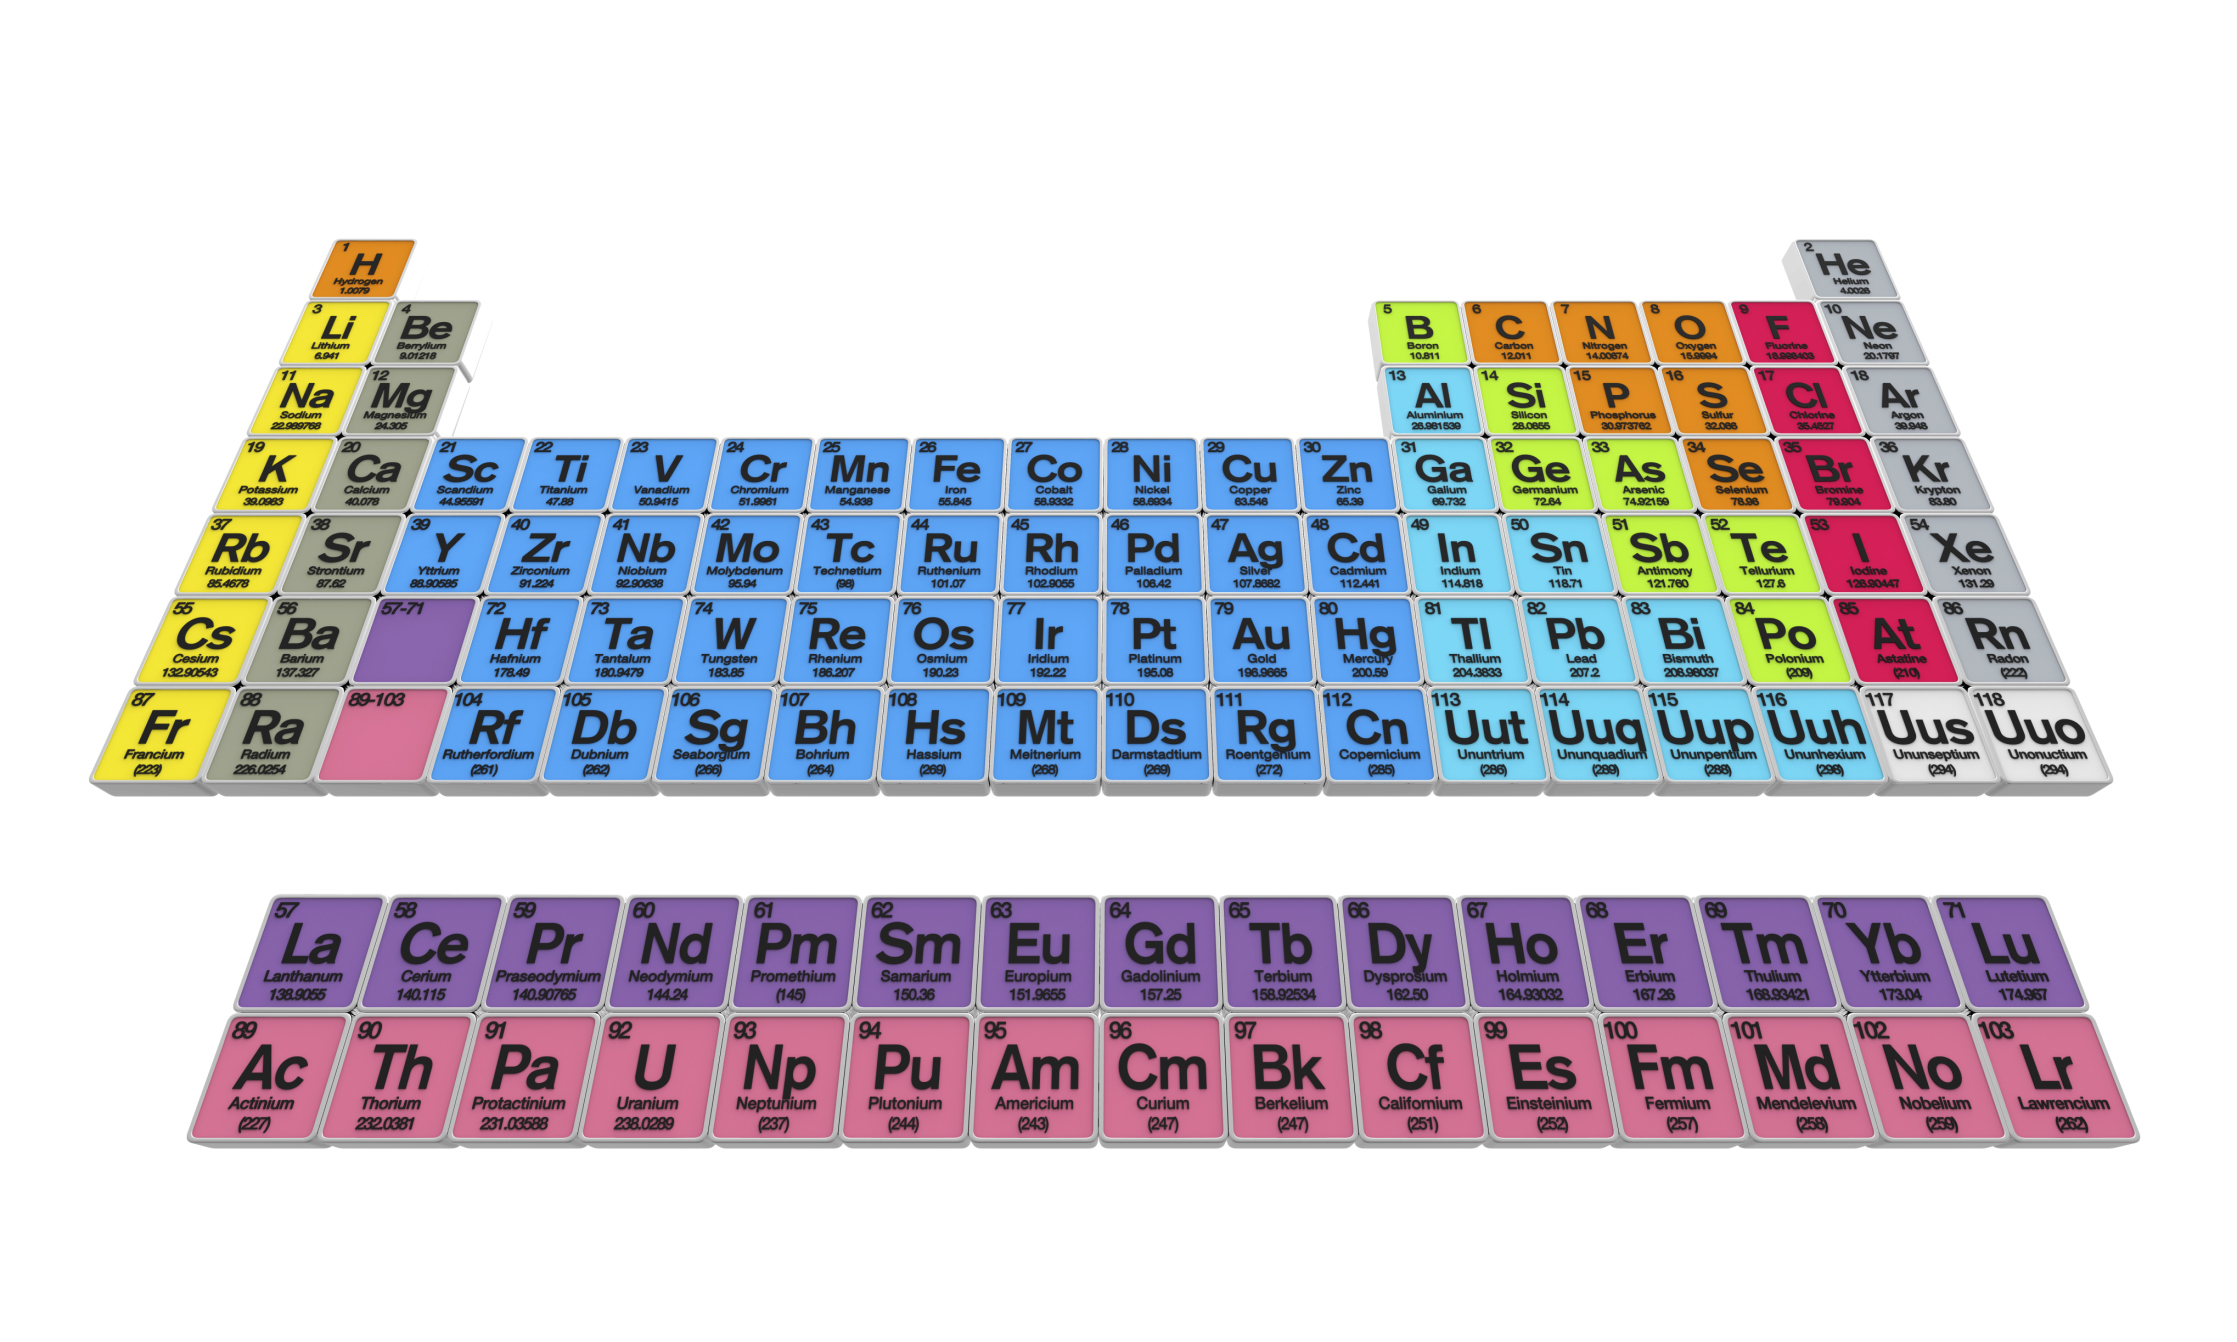 How To Figure Valence Of Electrons In The Periodic Table